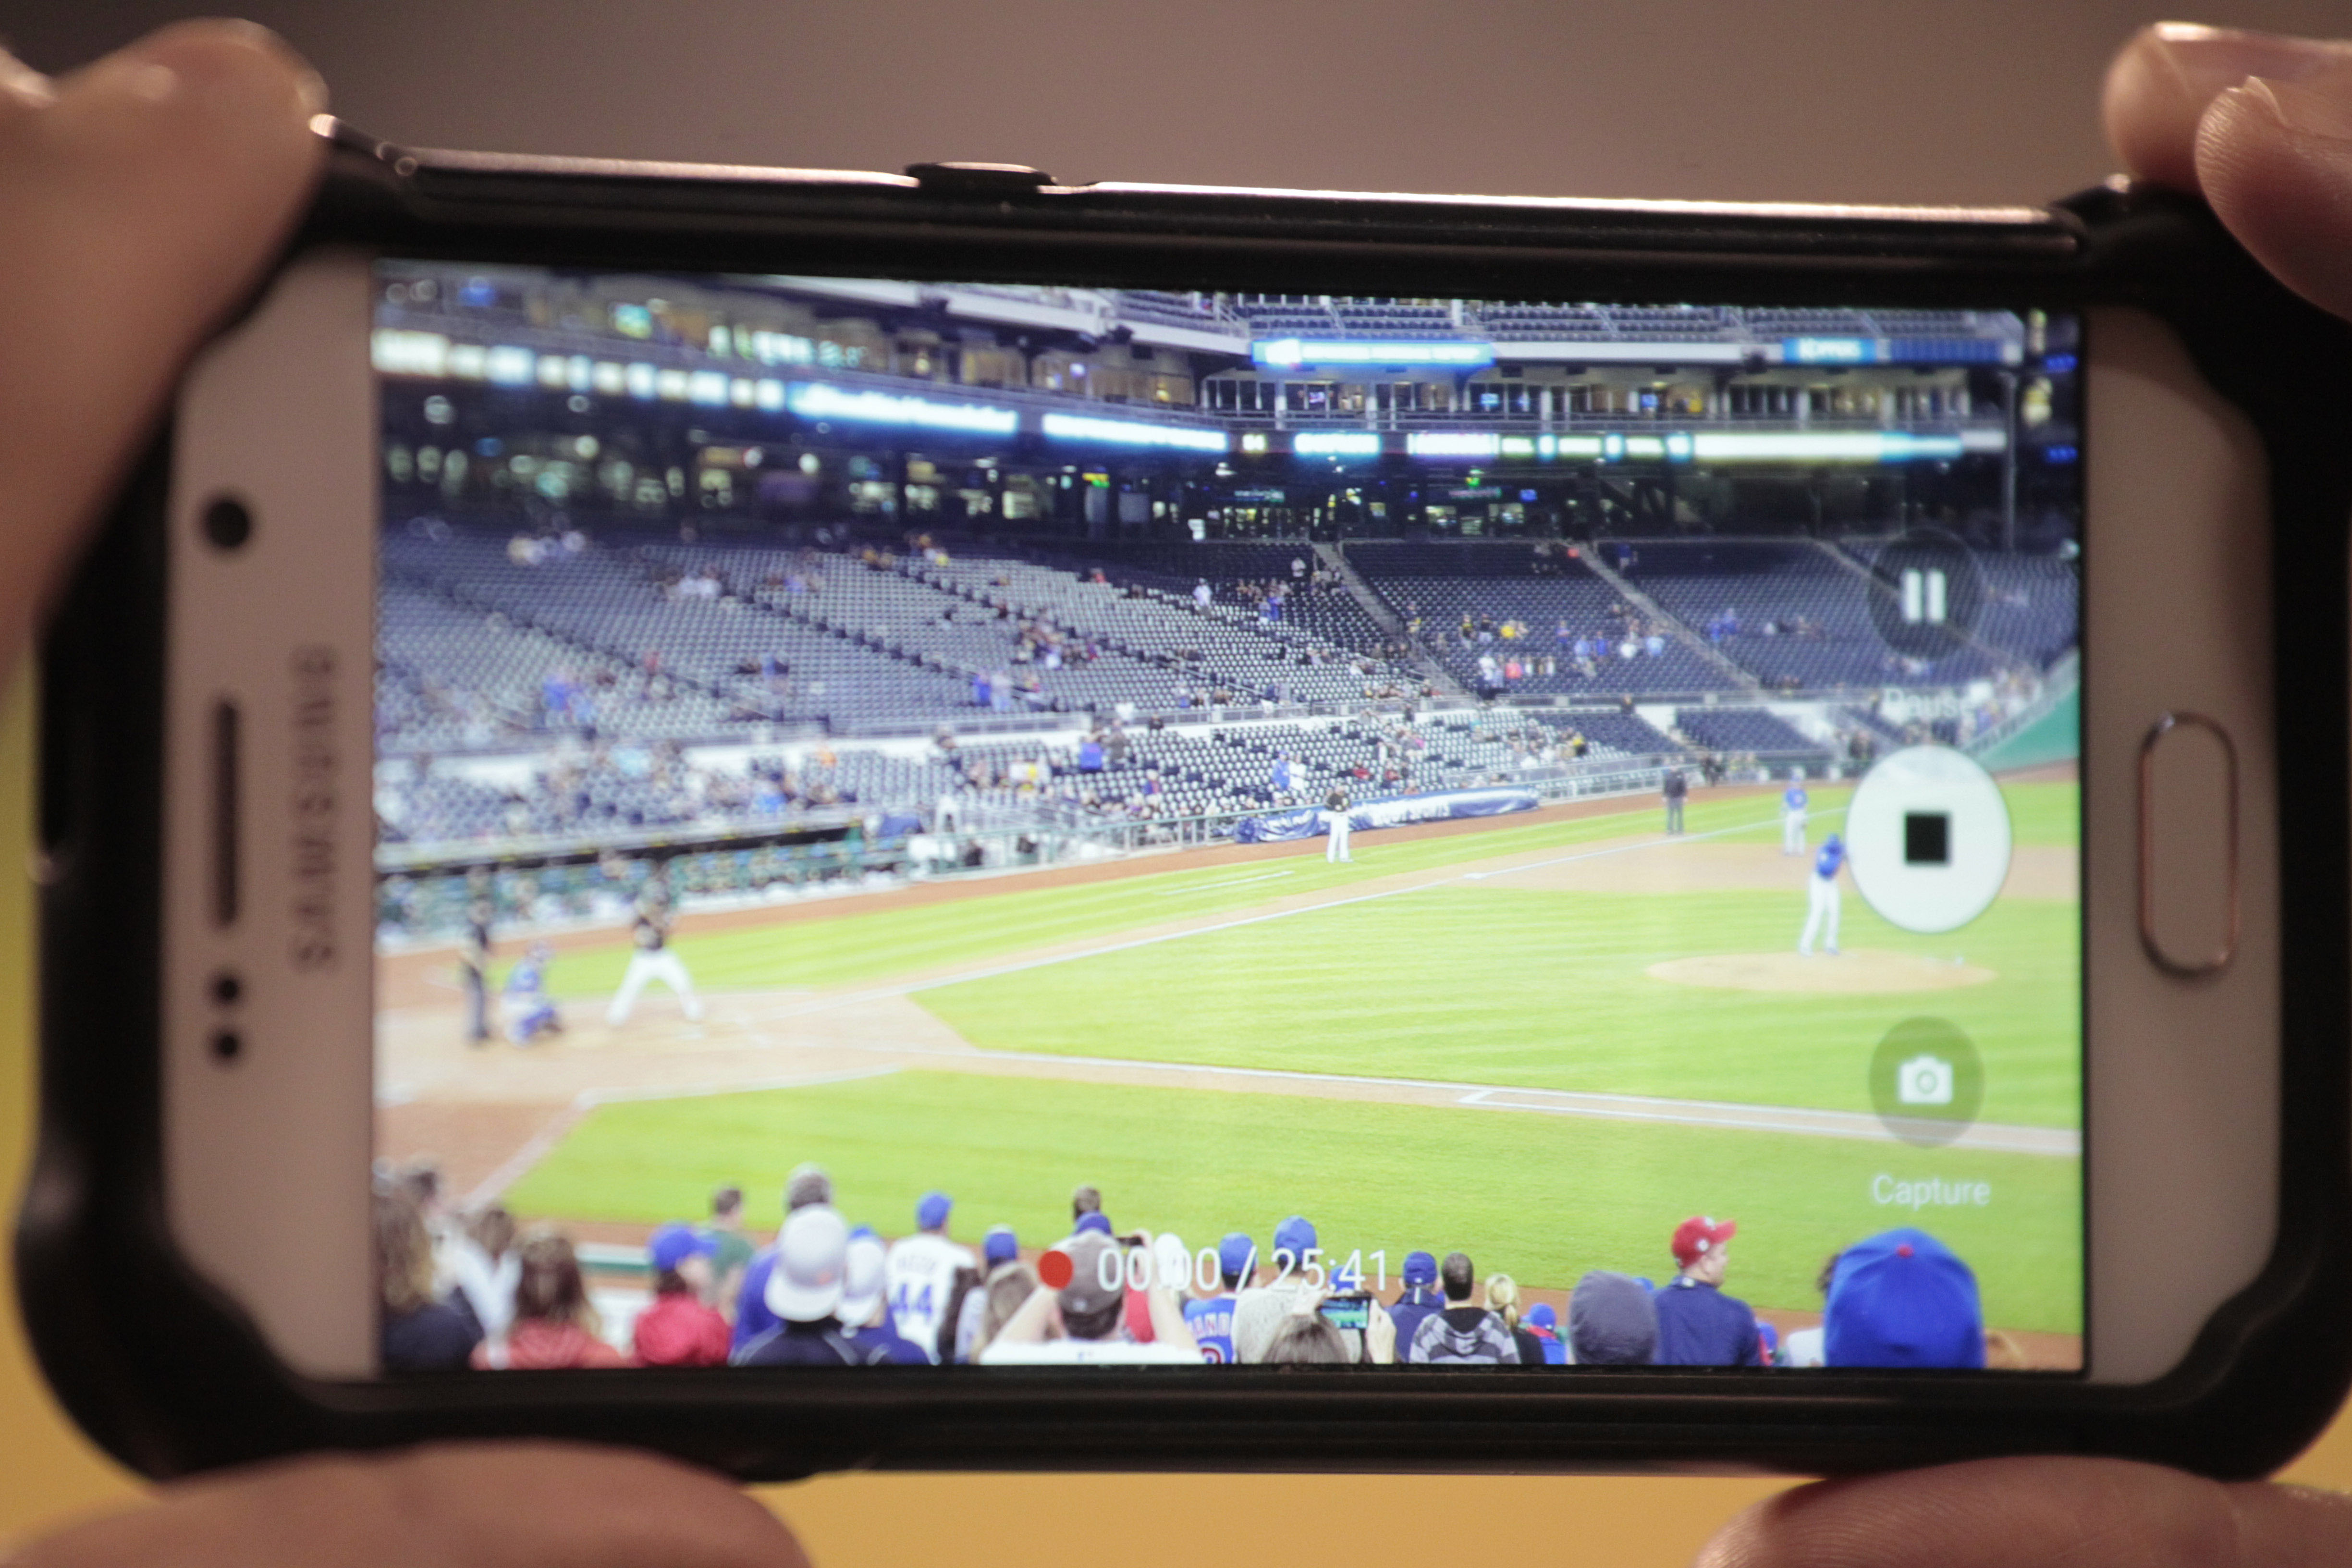 9569382-mlb-chicago-cubs-at-pittsburgh-pirates